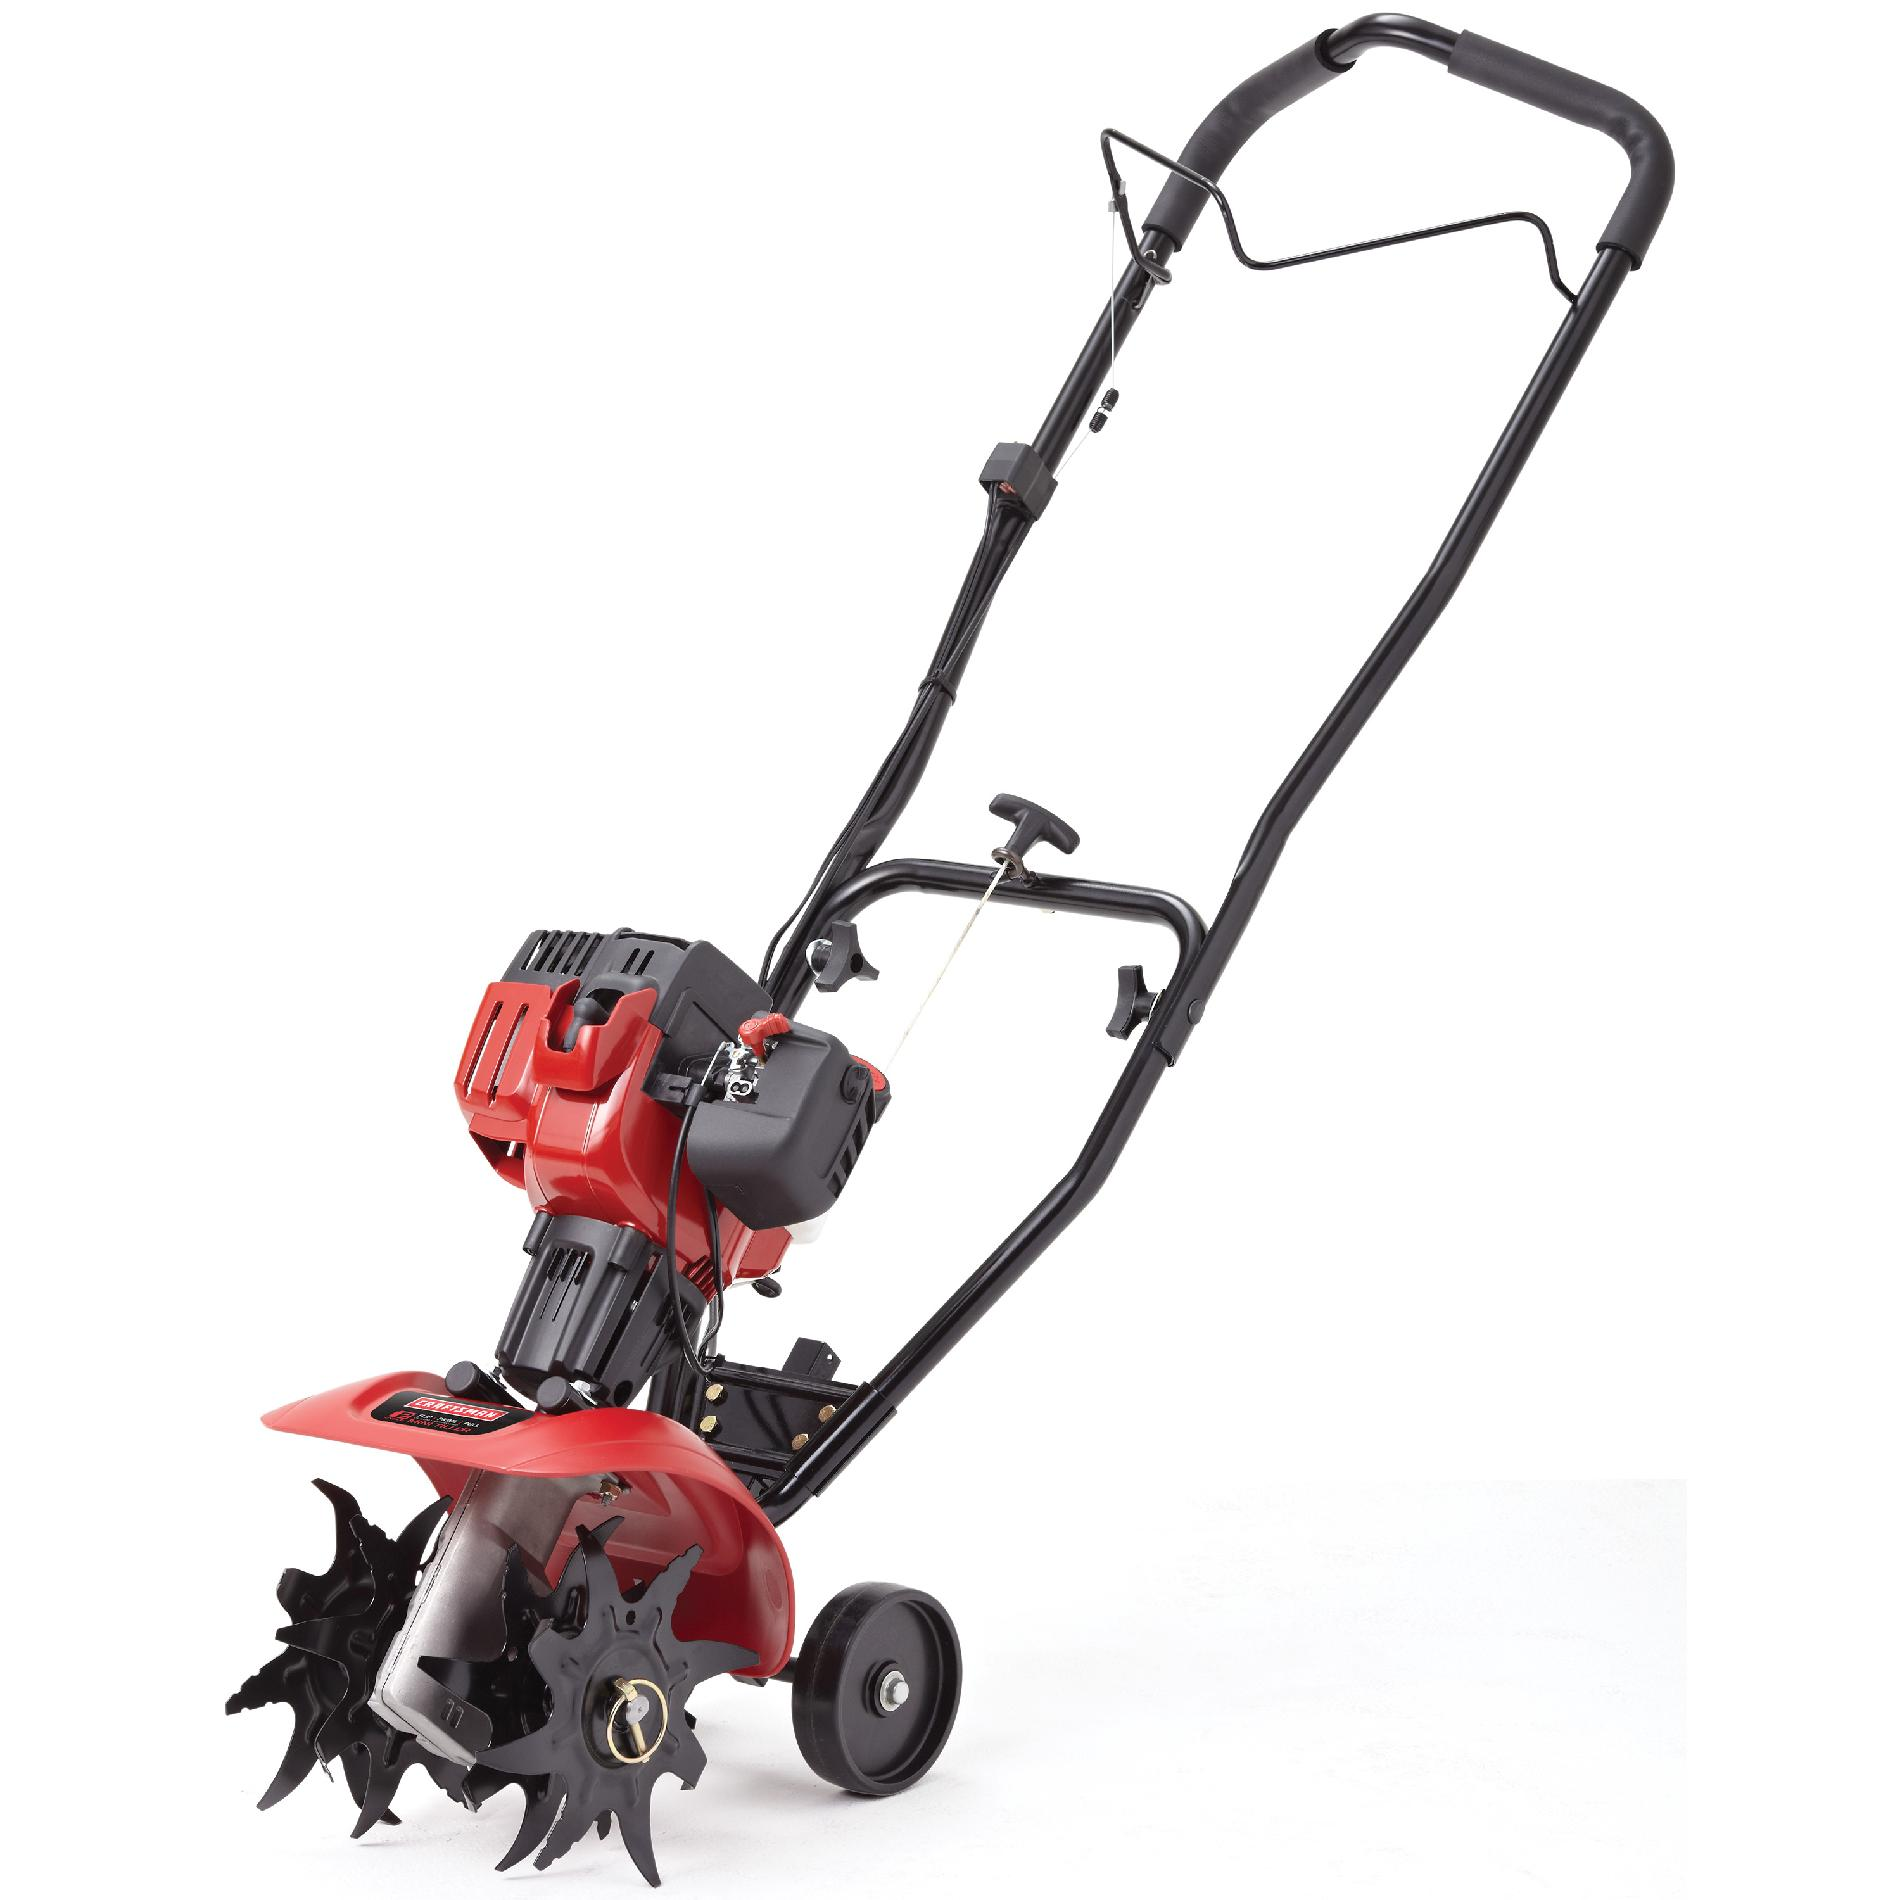 Craftsman 25cc* 2-Cycle Mini Tiller